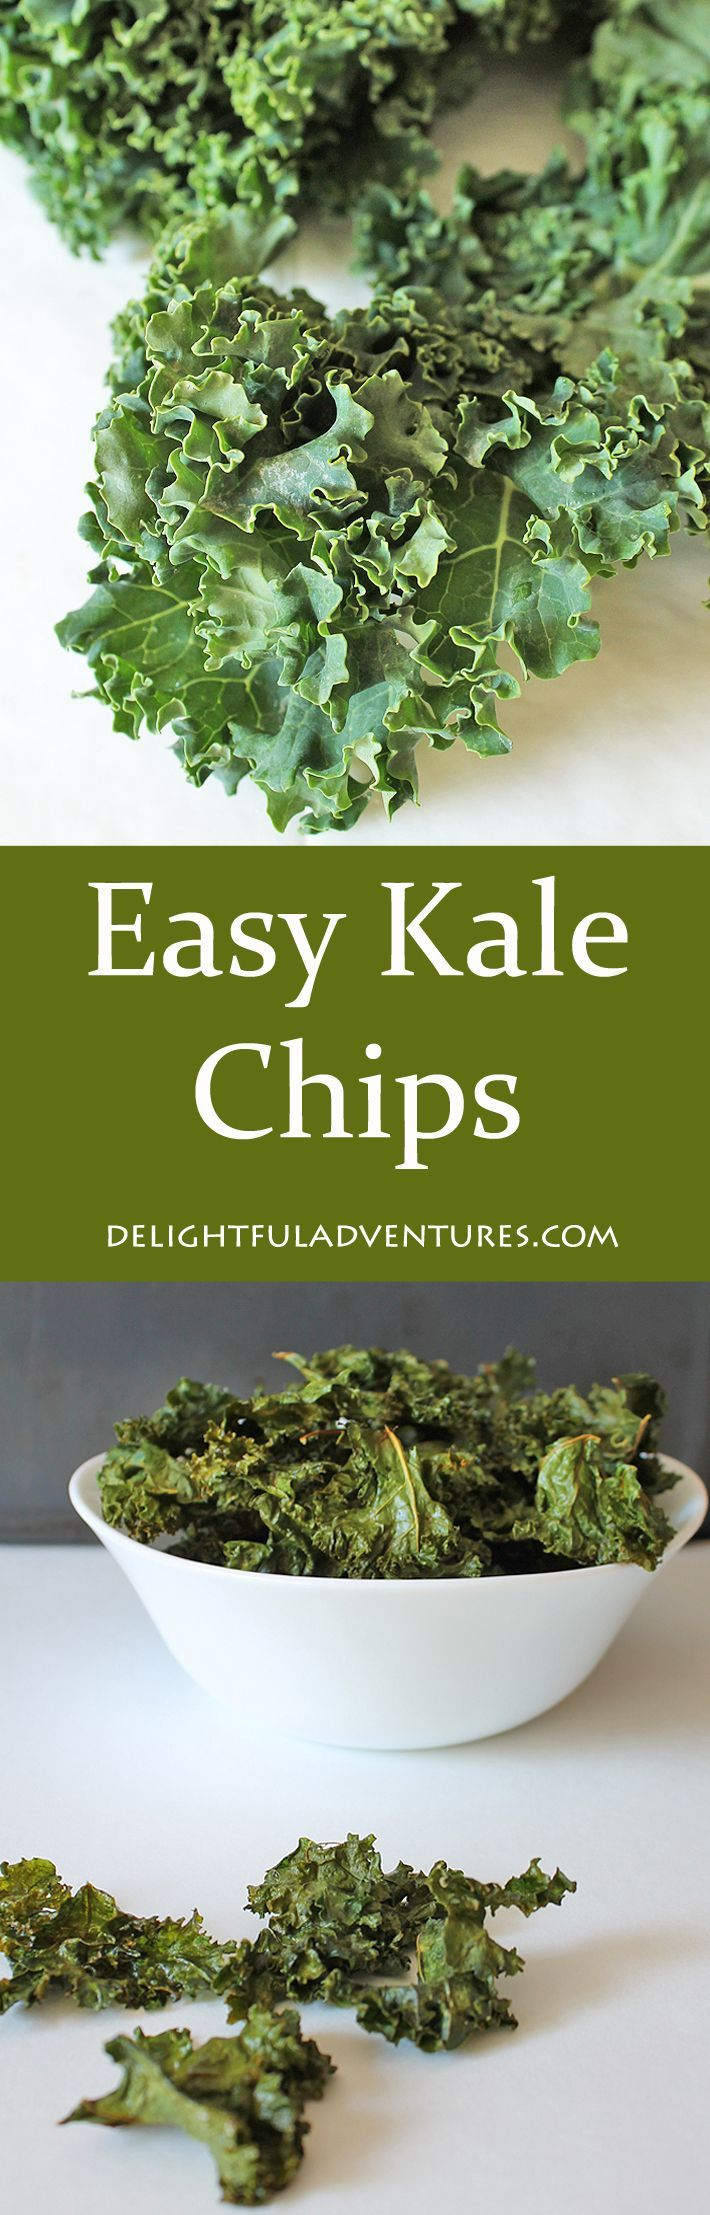 Searching for a recipe for easy kale chips? Search no more, this is it! Plus, learn the trick to retaining the nutrition in your baked kale chips.